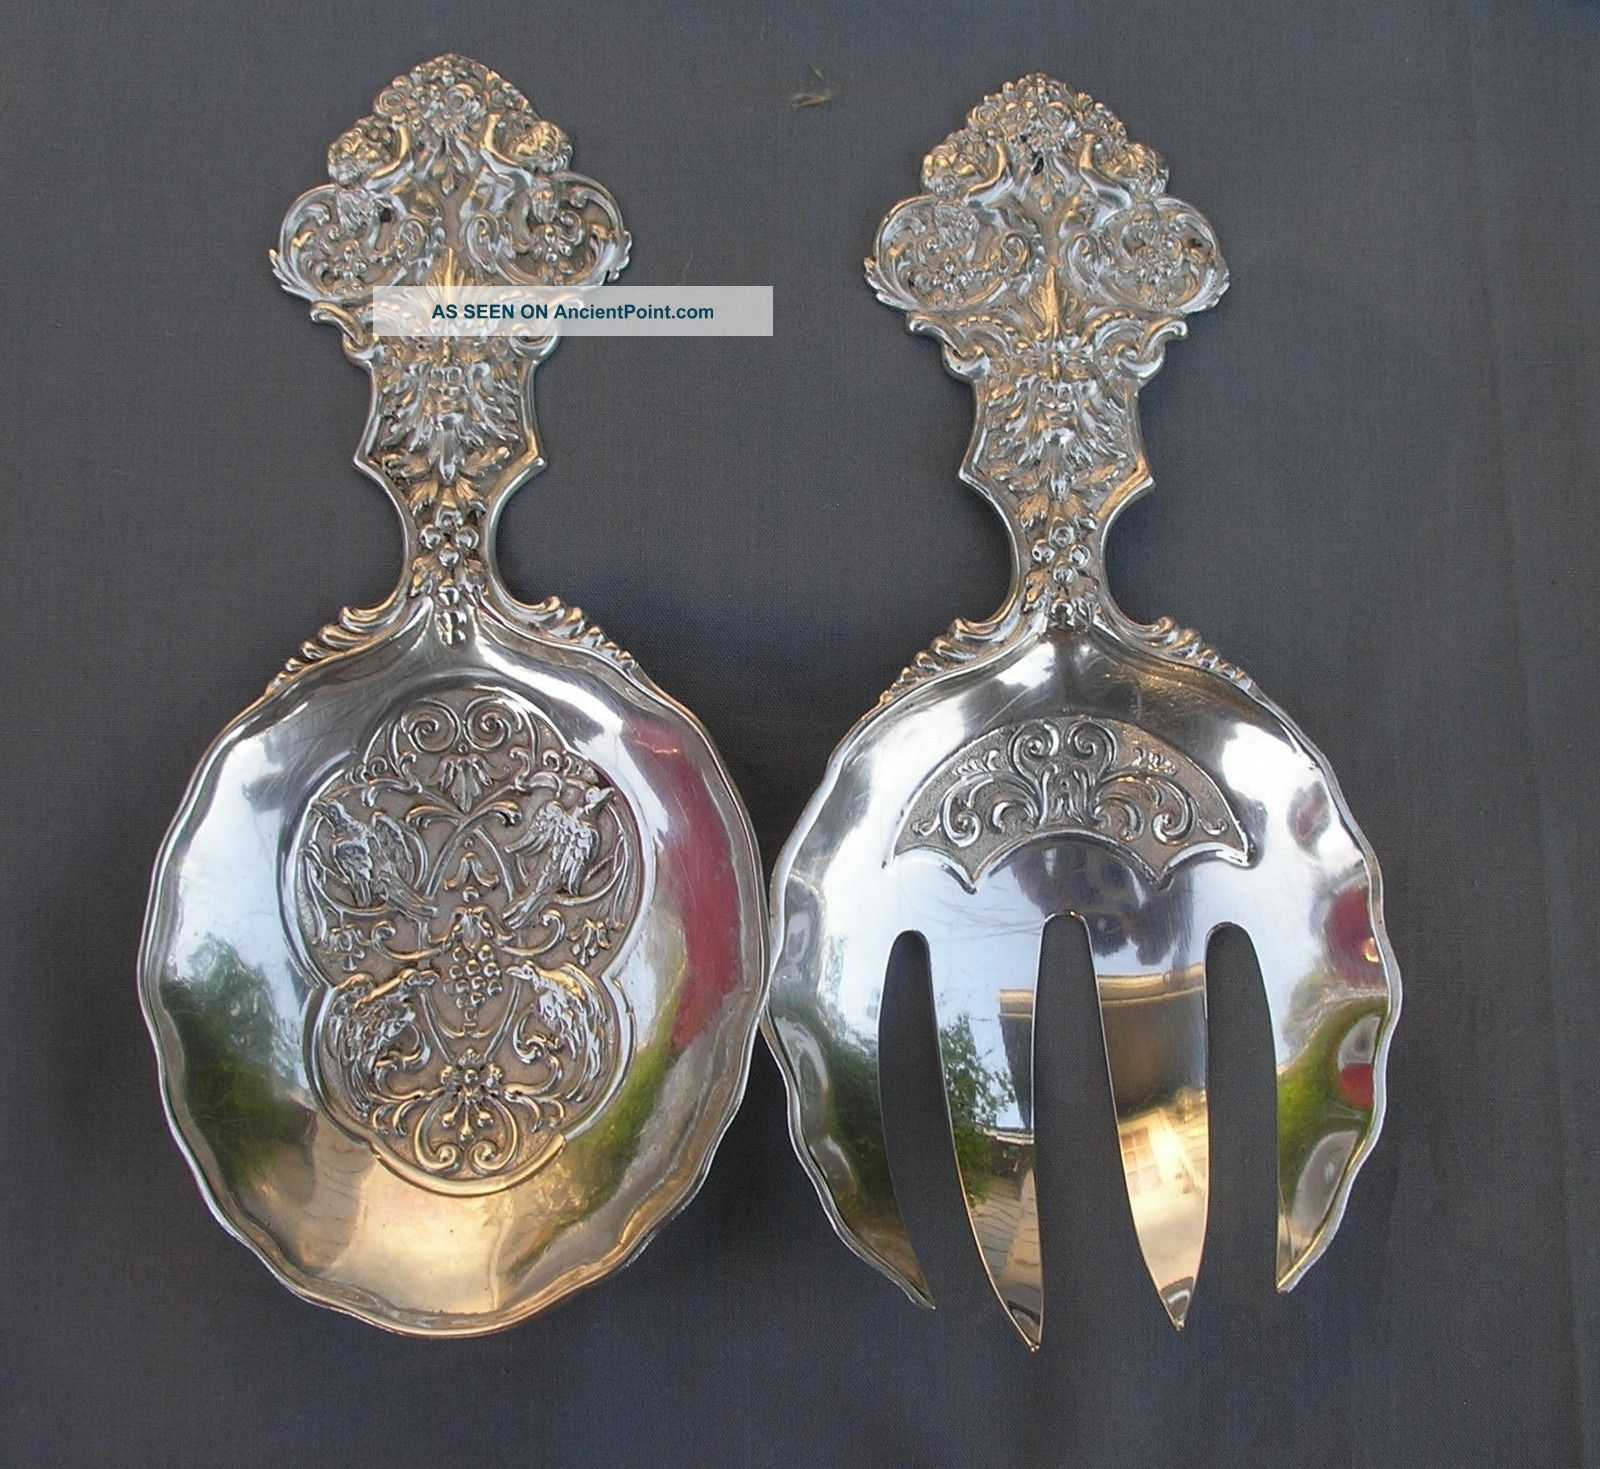 Rare J.  D.  Schleissner & Sohne 800 Silver Pickled Herring Serving Set C1816 Hanau Germany photo